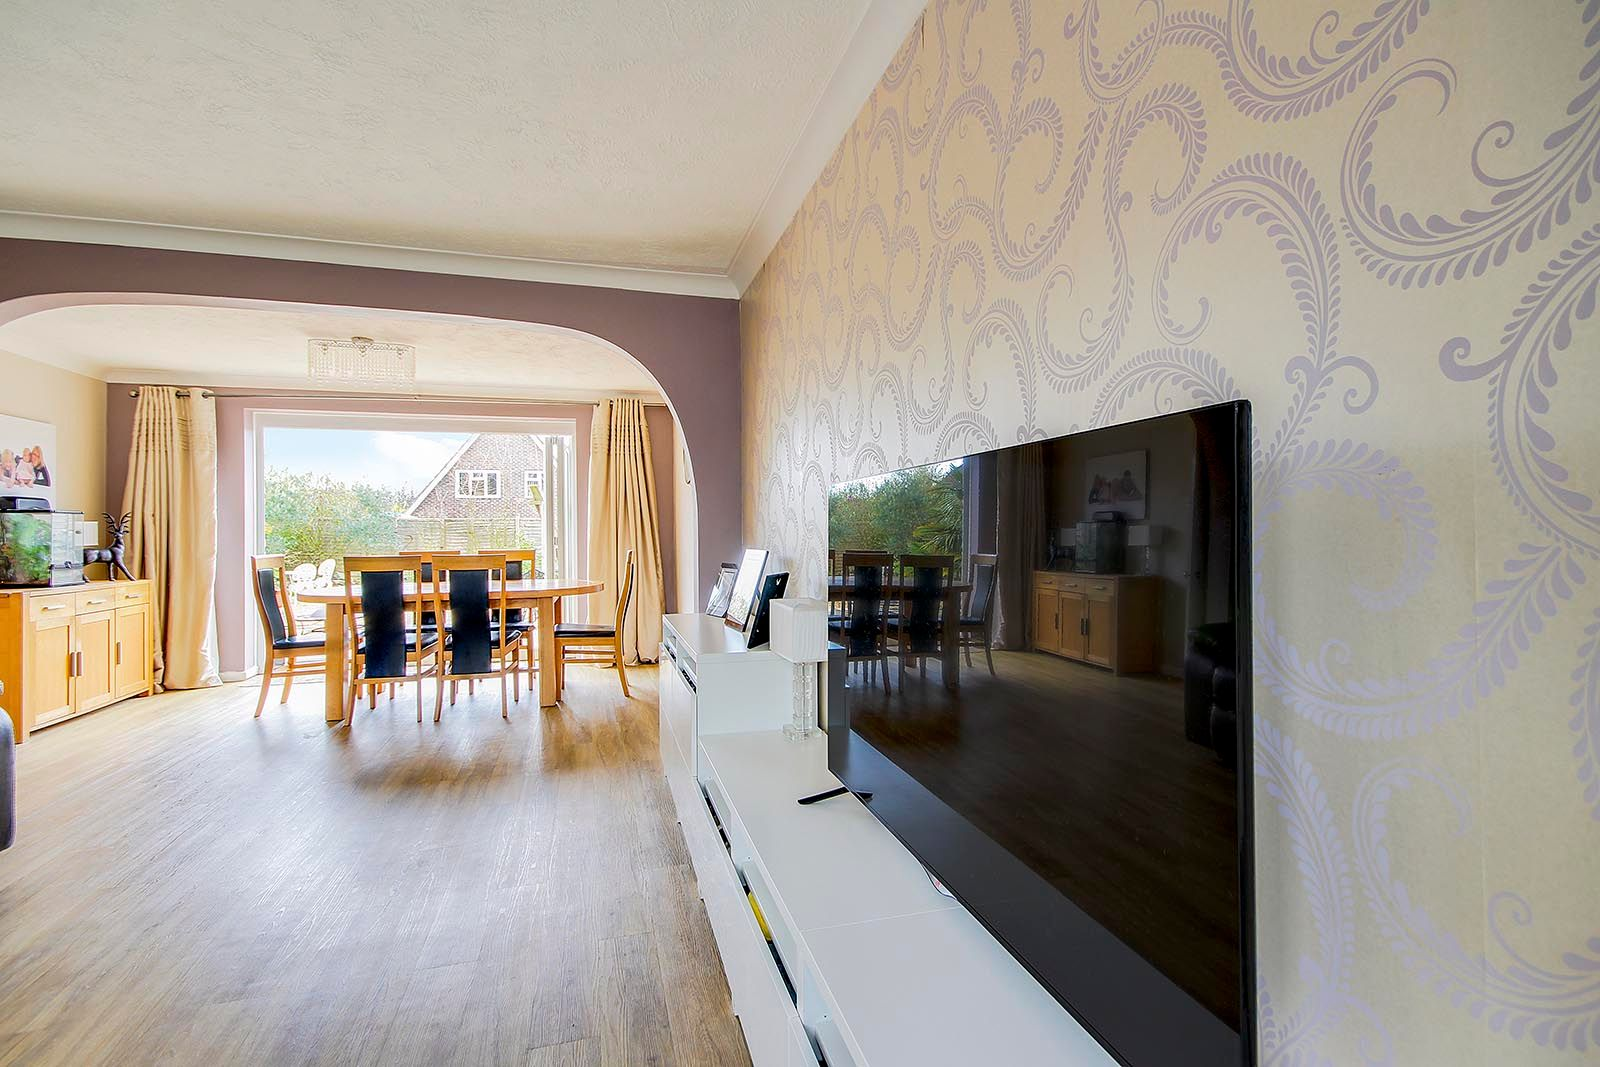 3 bed house for sale in Woodlands Close (COMP AUG 19) 11